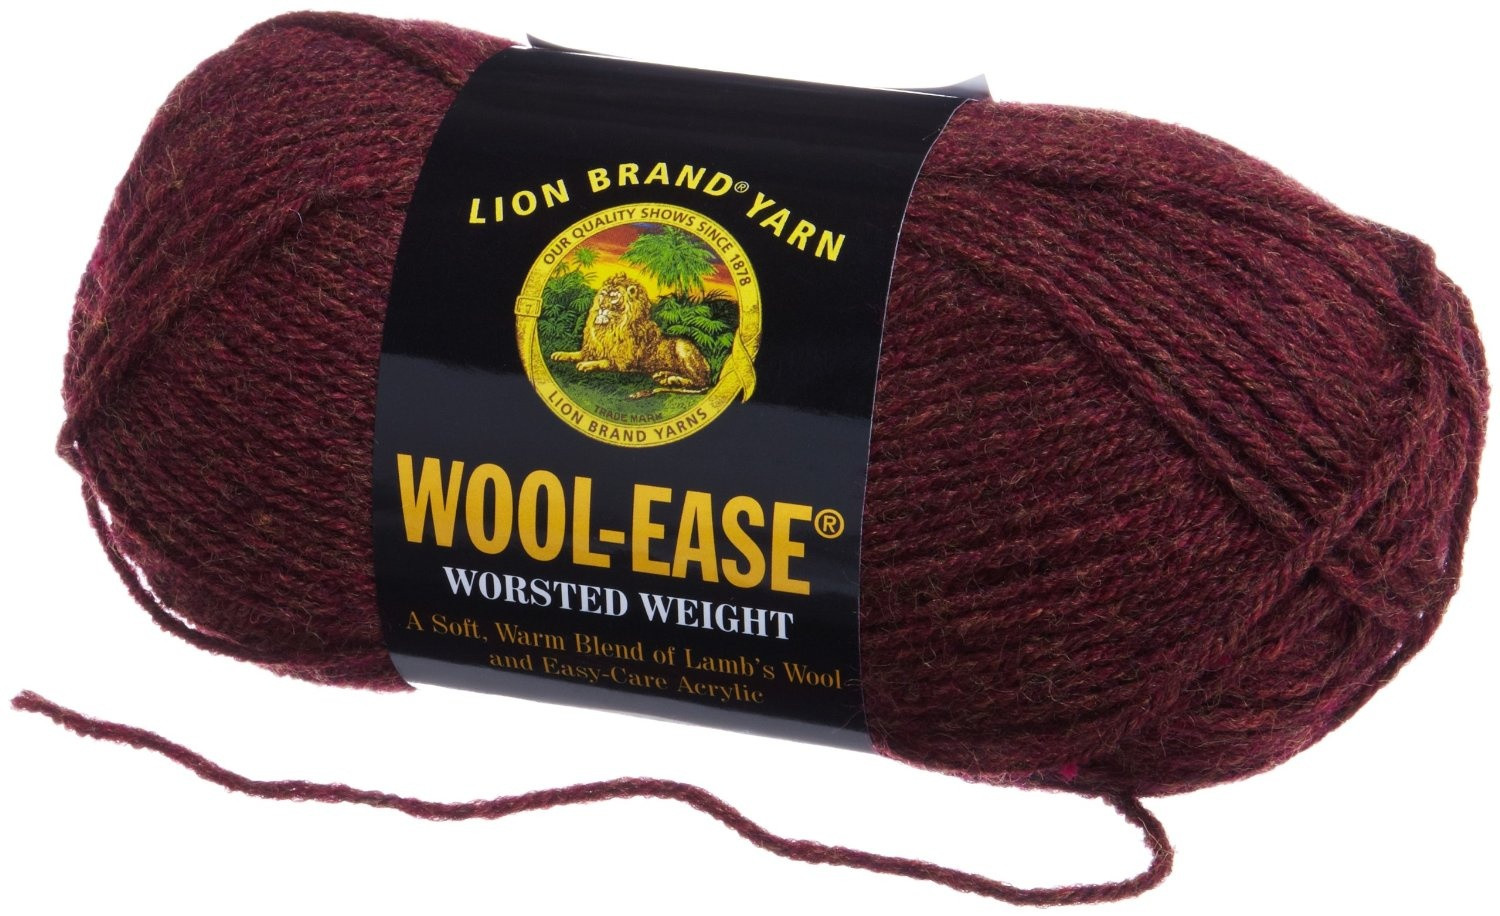 Lion Brand Wool Ease New Lion Brand Yarn Wool Ease Yarn Best Price Of Lion Brand Wool Ease Elegant Lion Brand Wool Ease Crochet Yarn & Wool